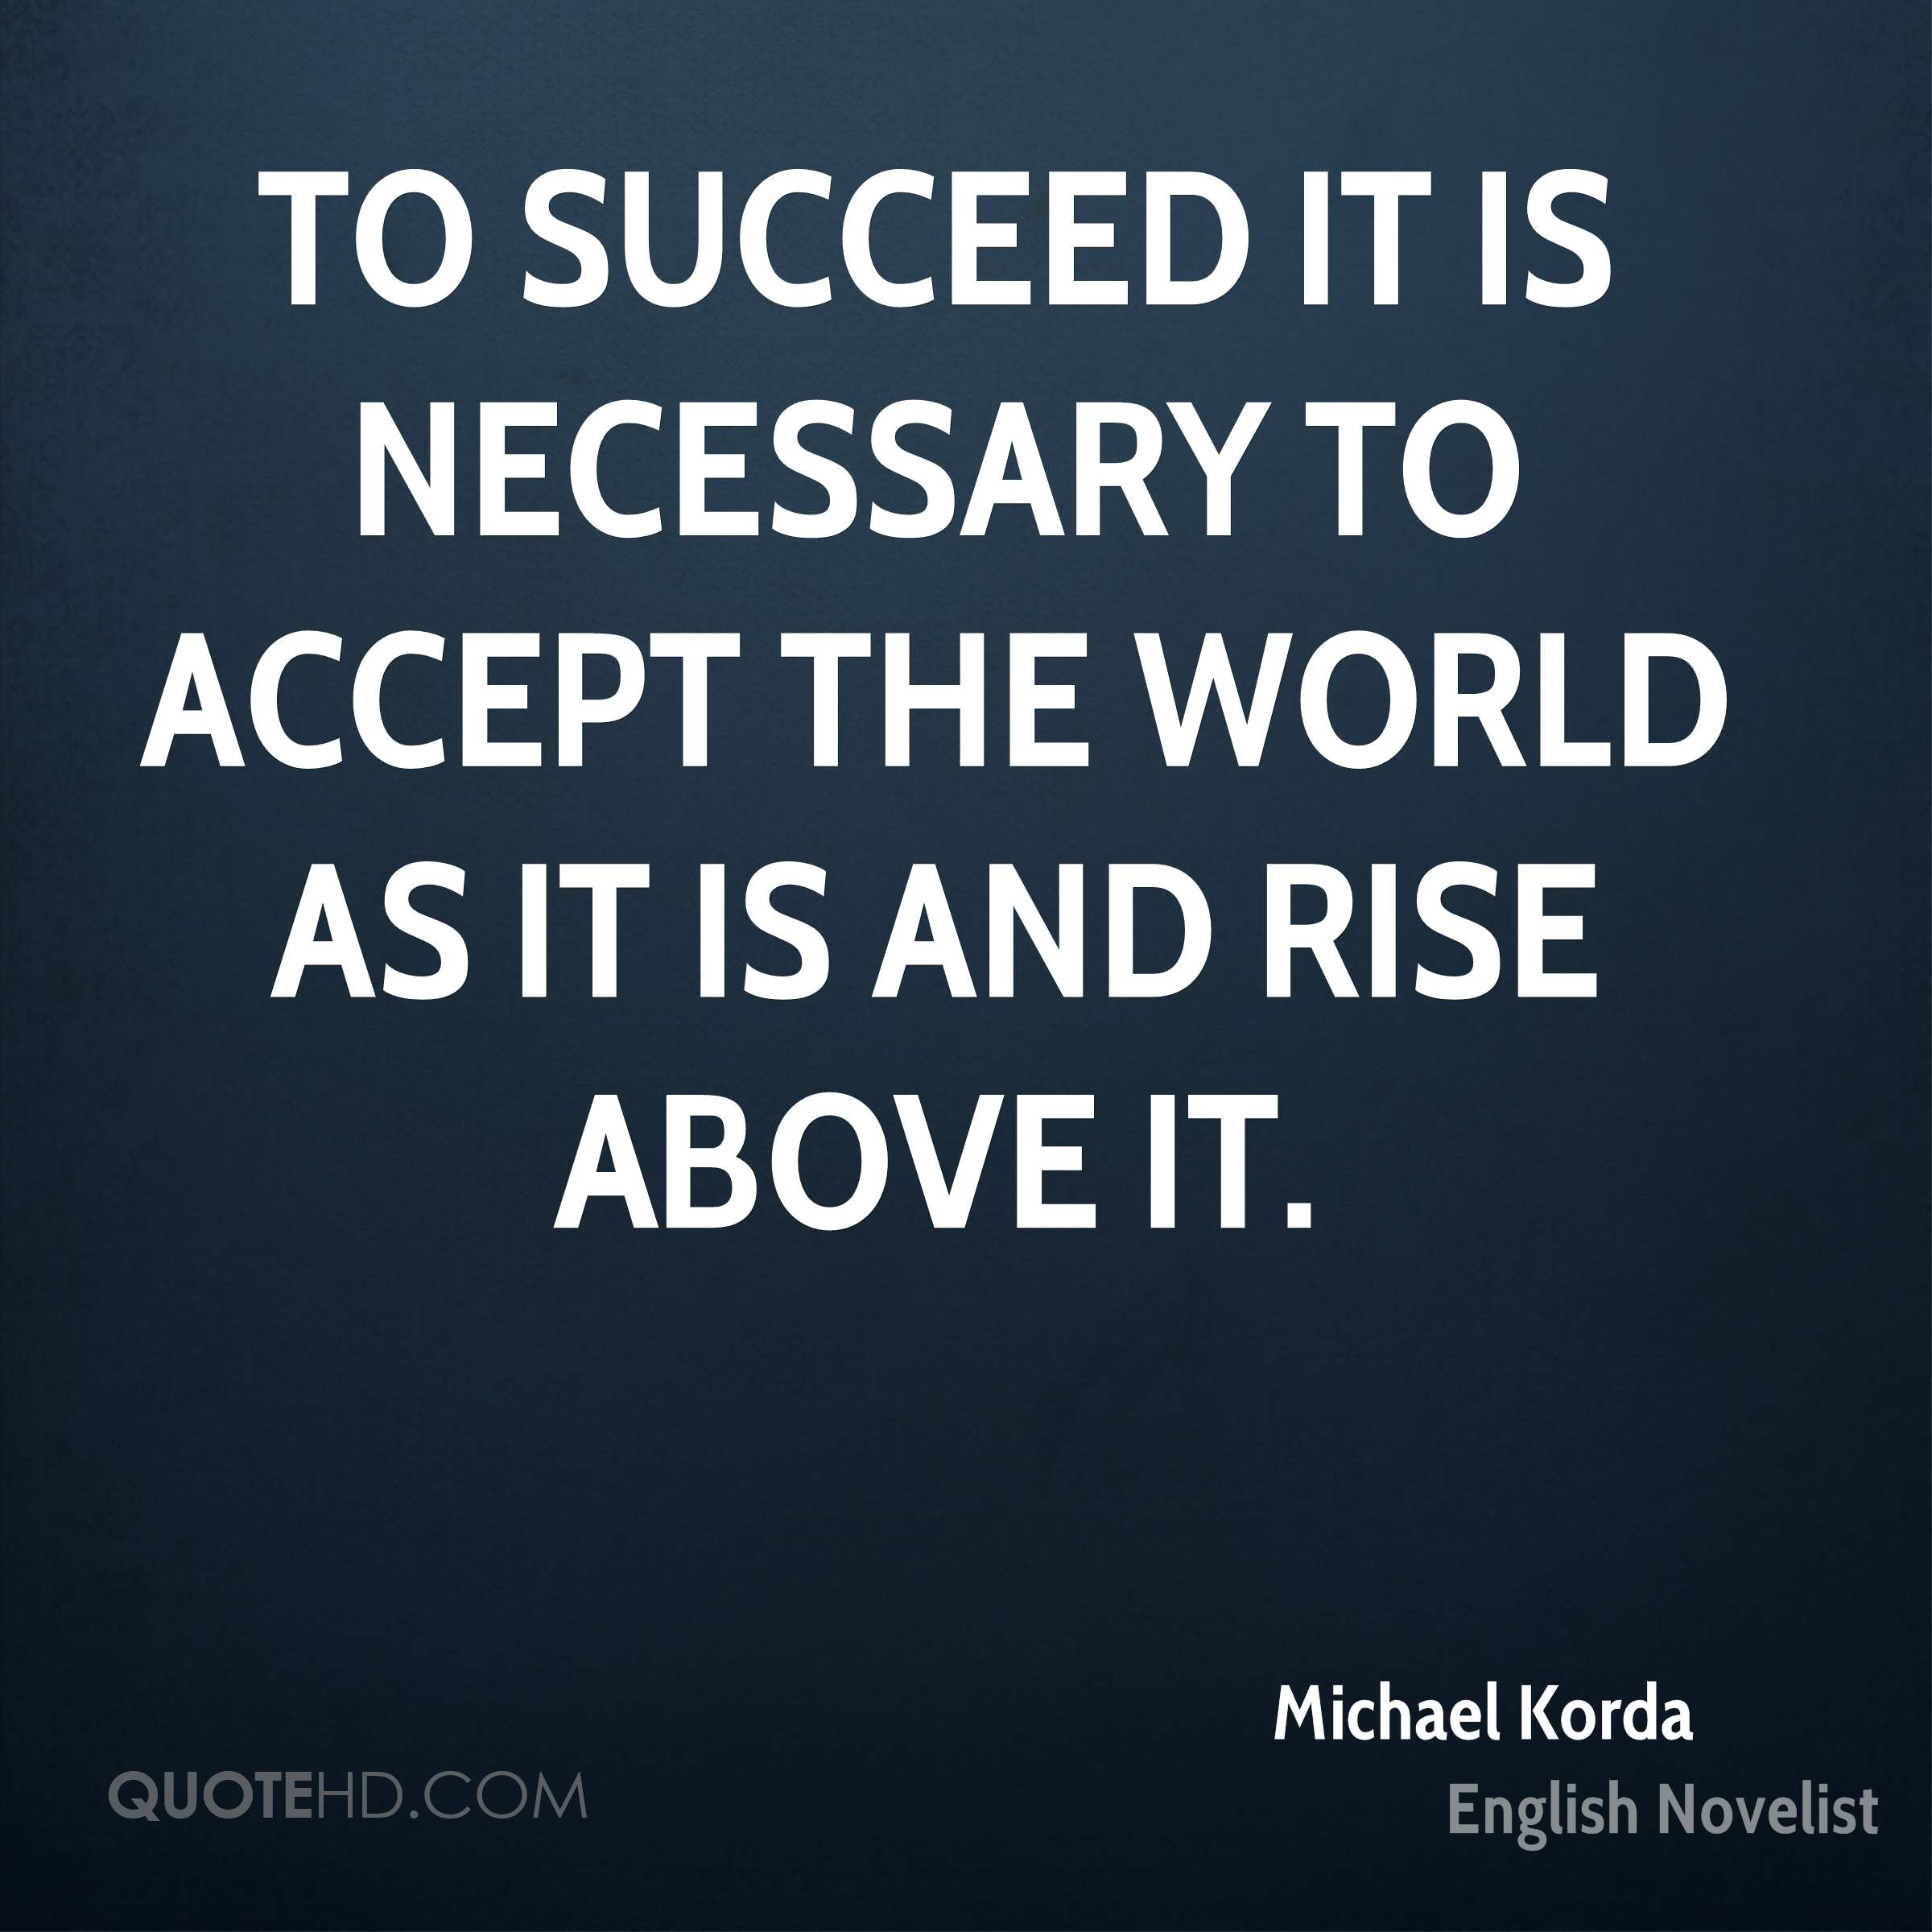 To succeed it is necessary to accept the world as it is and rise above it.